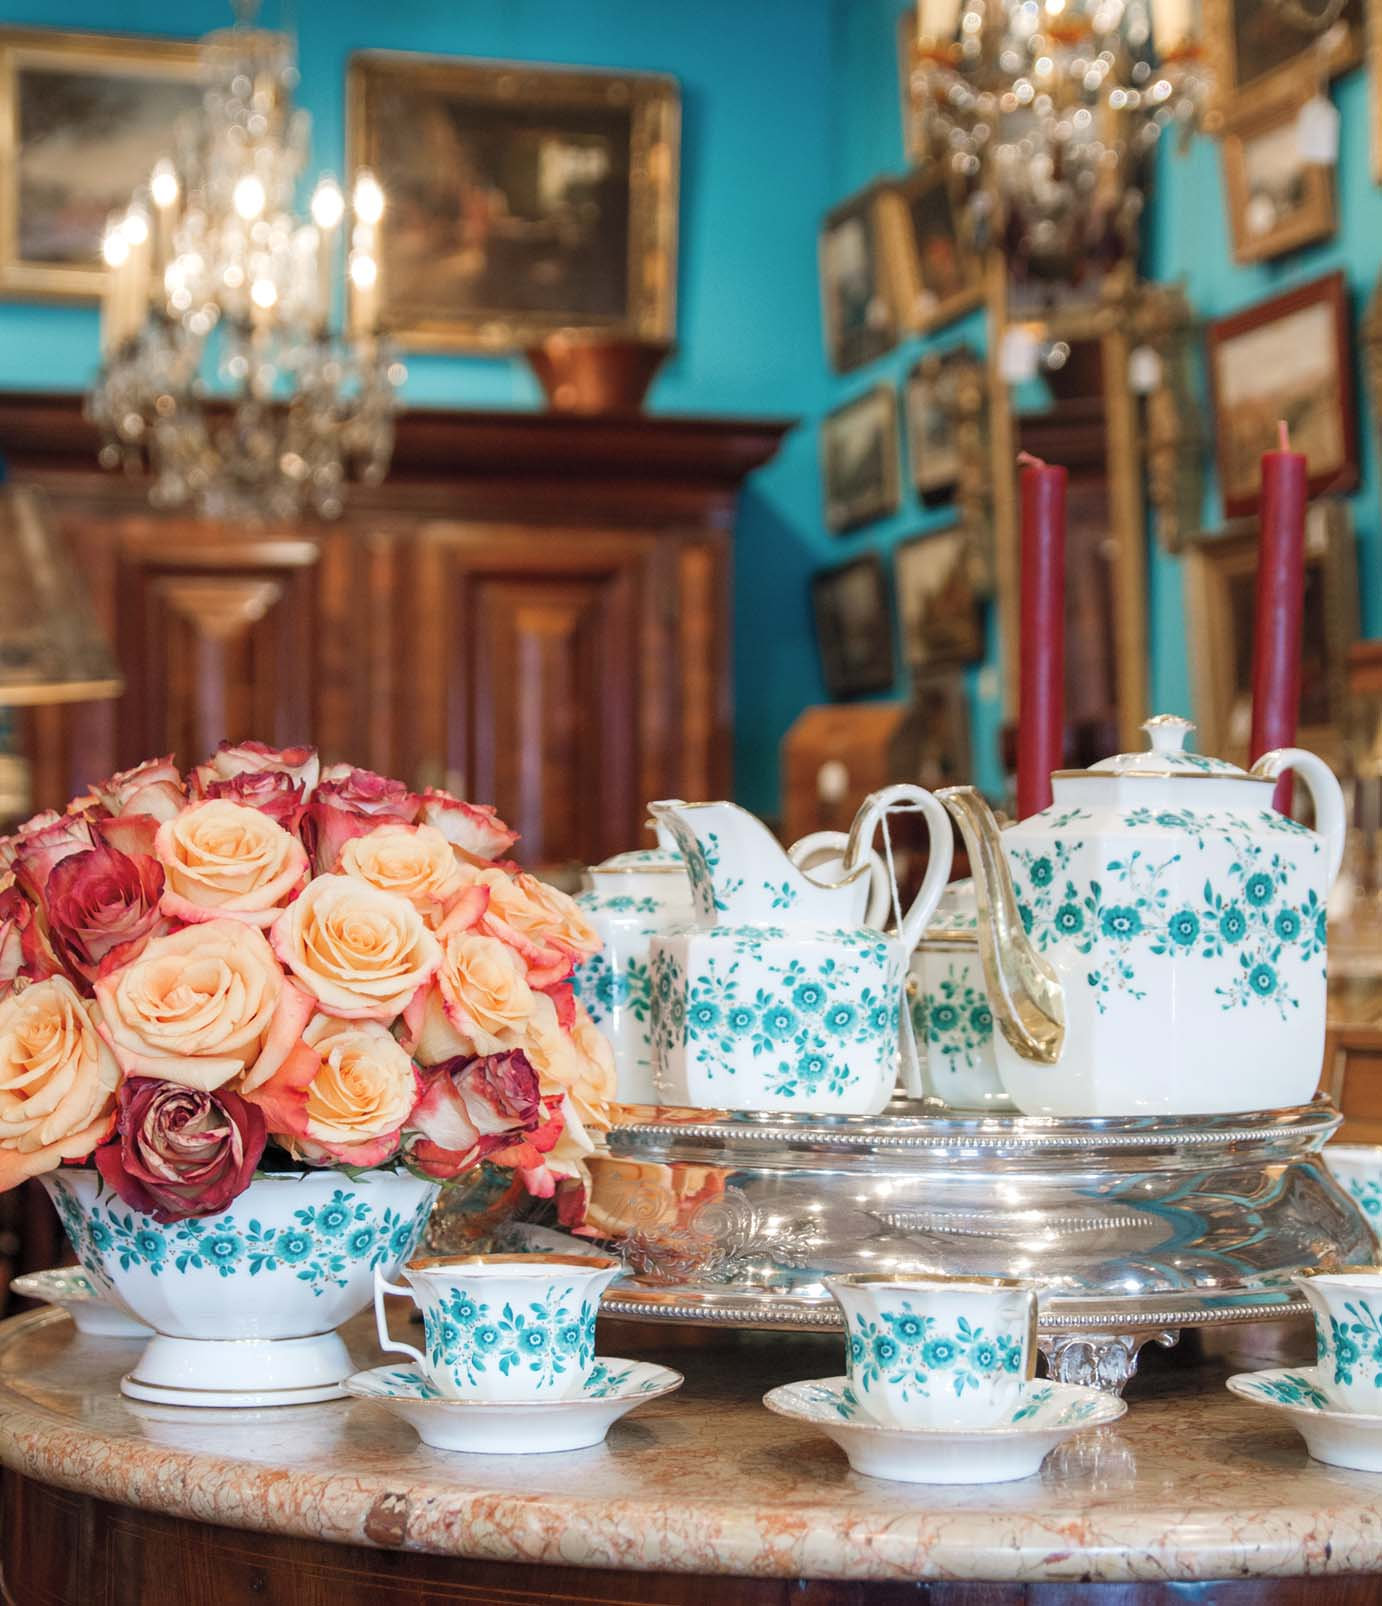 antique tea/coffee set with teal floral design on white porcelain. A rounded arrangement of muted pink and red garden roses fill a serving bowl